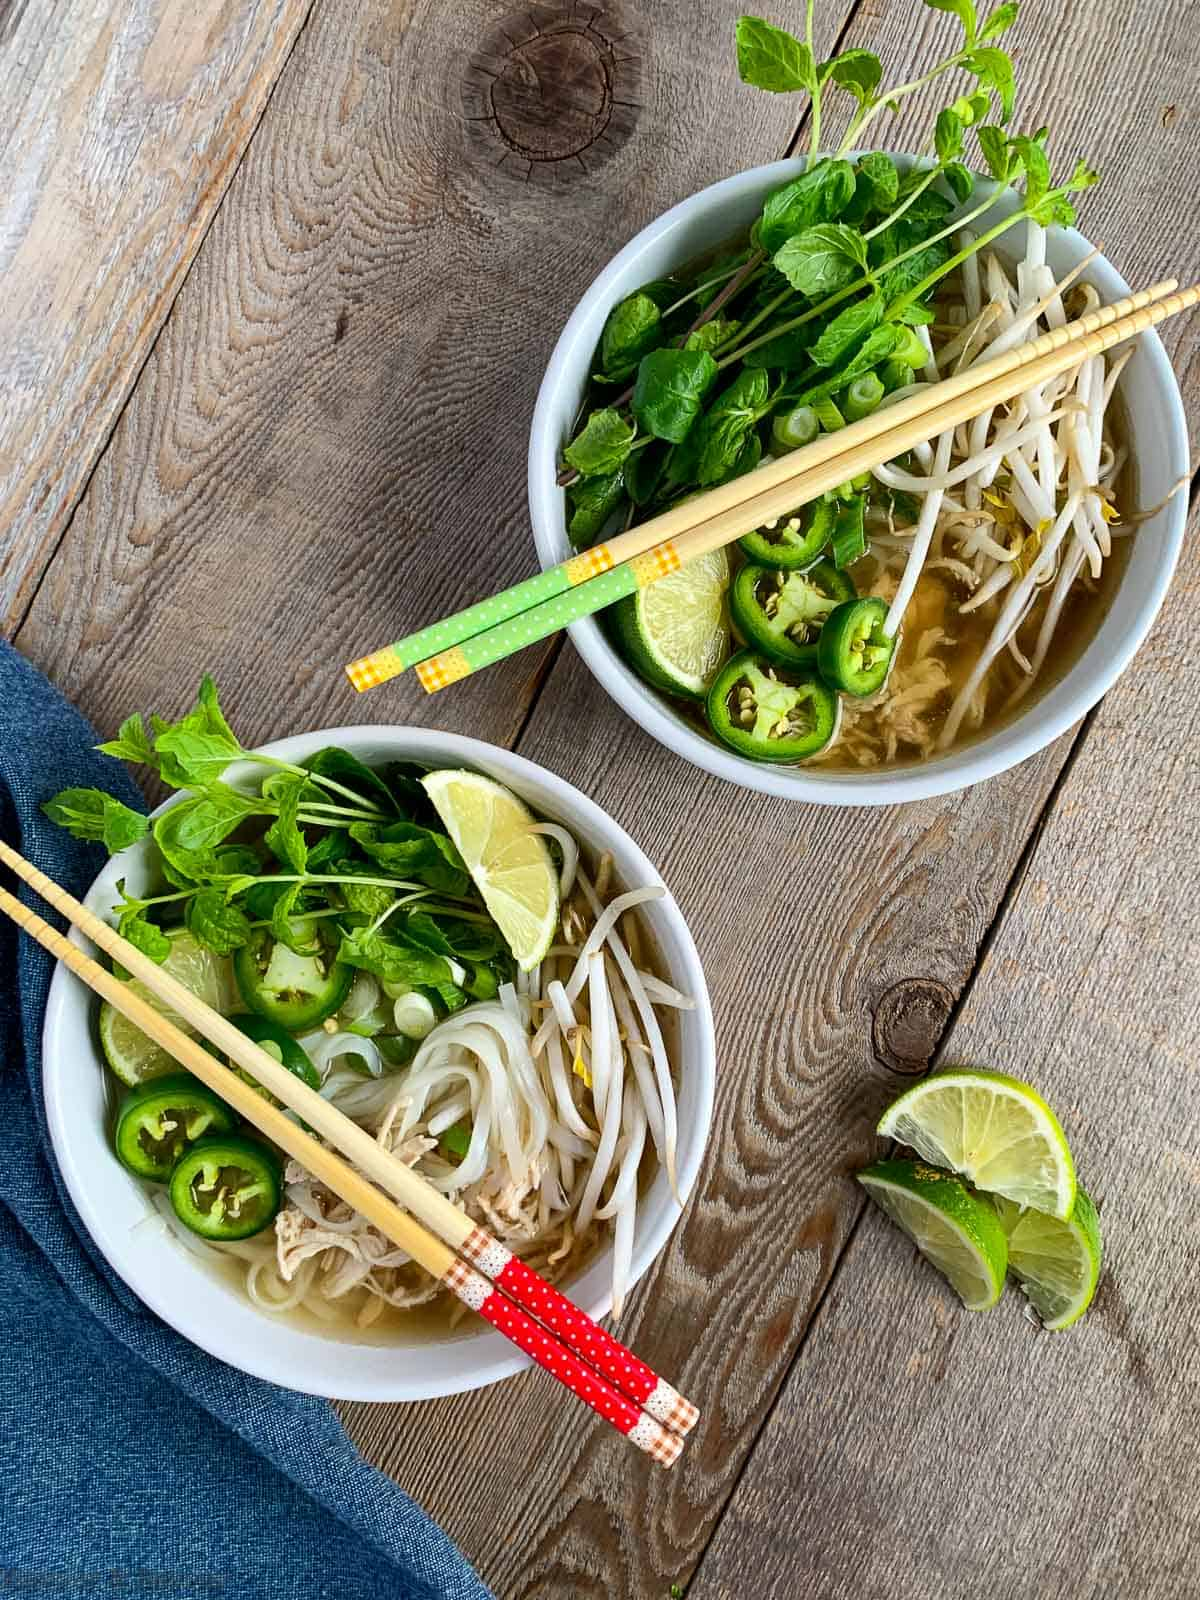 Two bowls of Chicken Pho (Pho Ga) also known as Vietnamese Chicken Noodle Soup